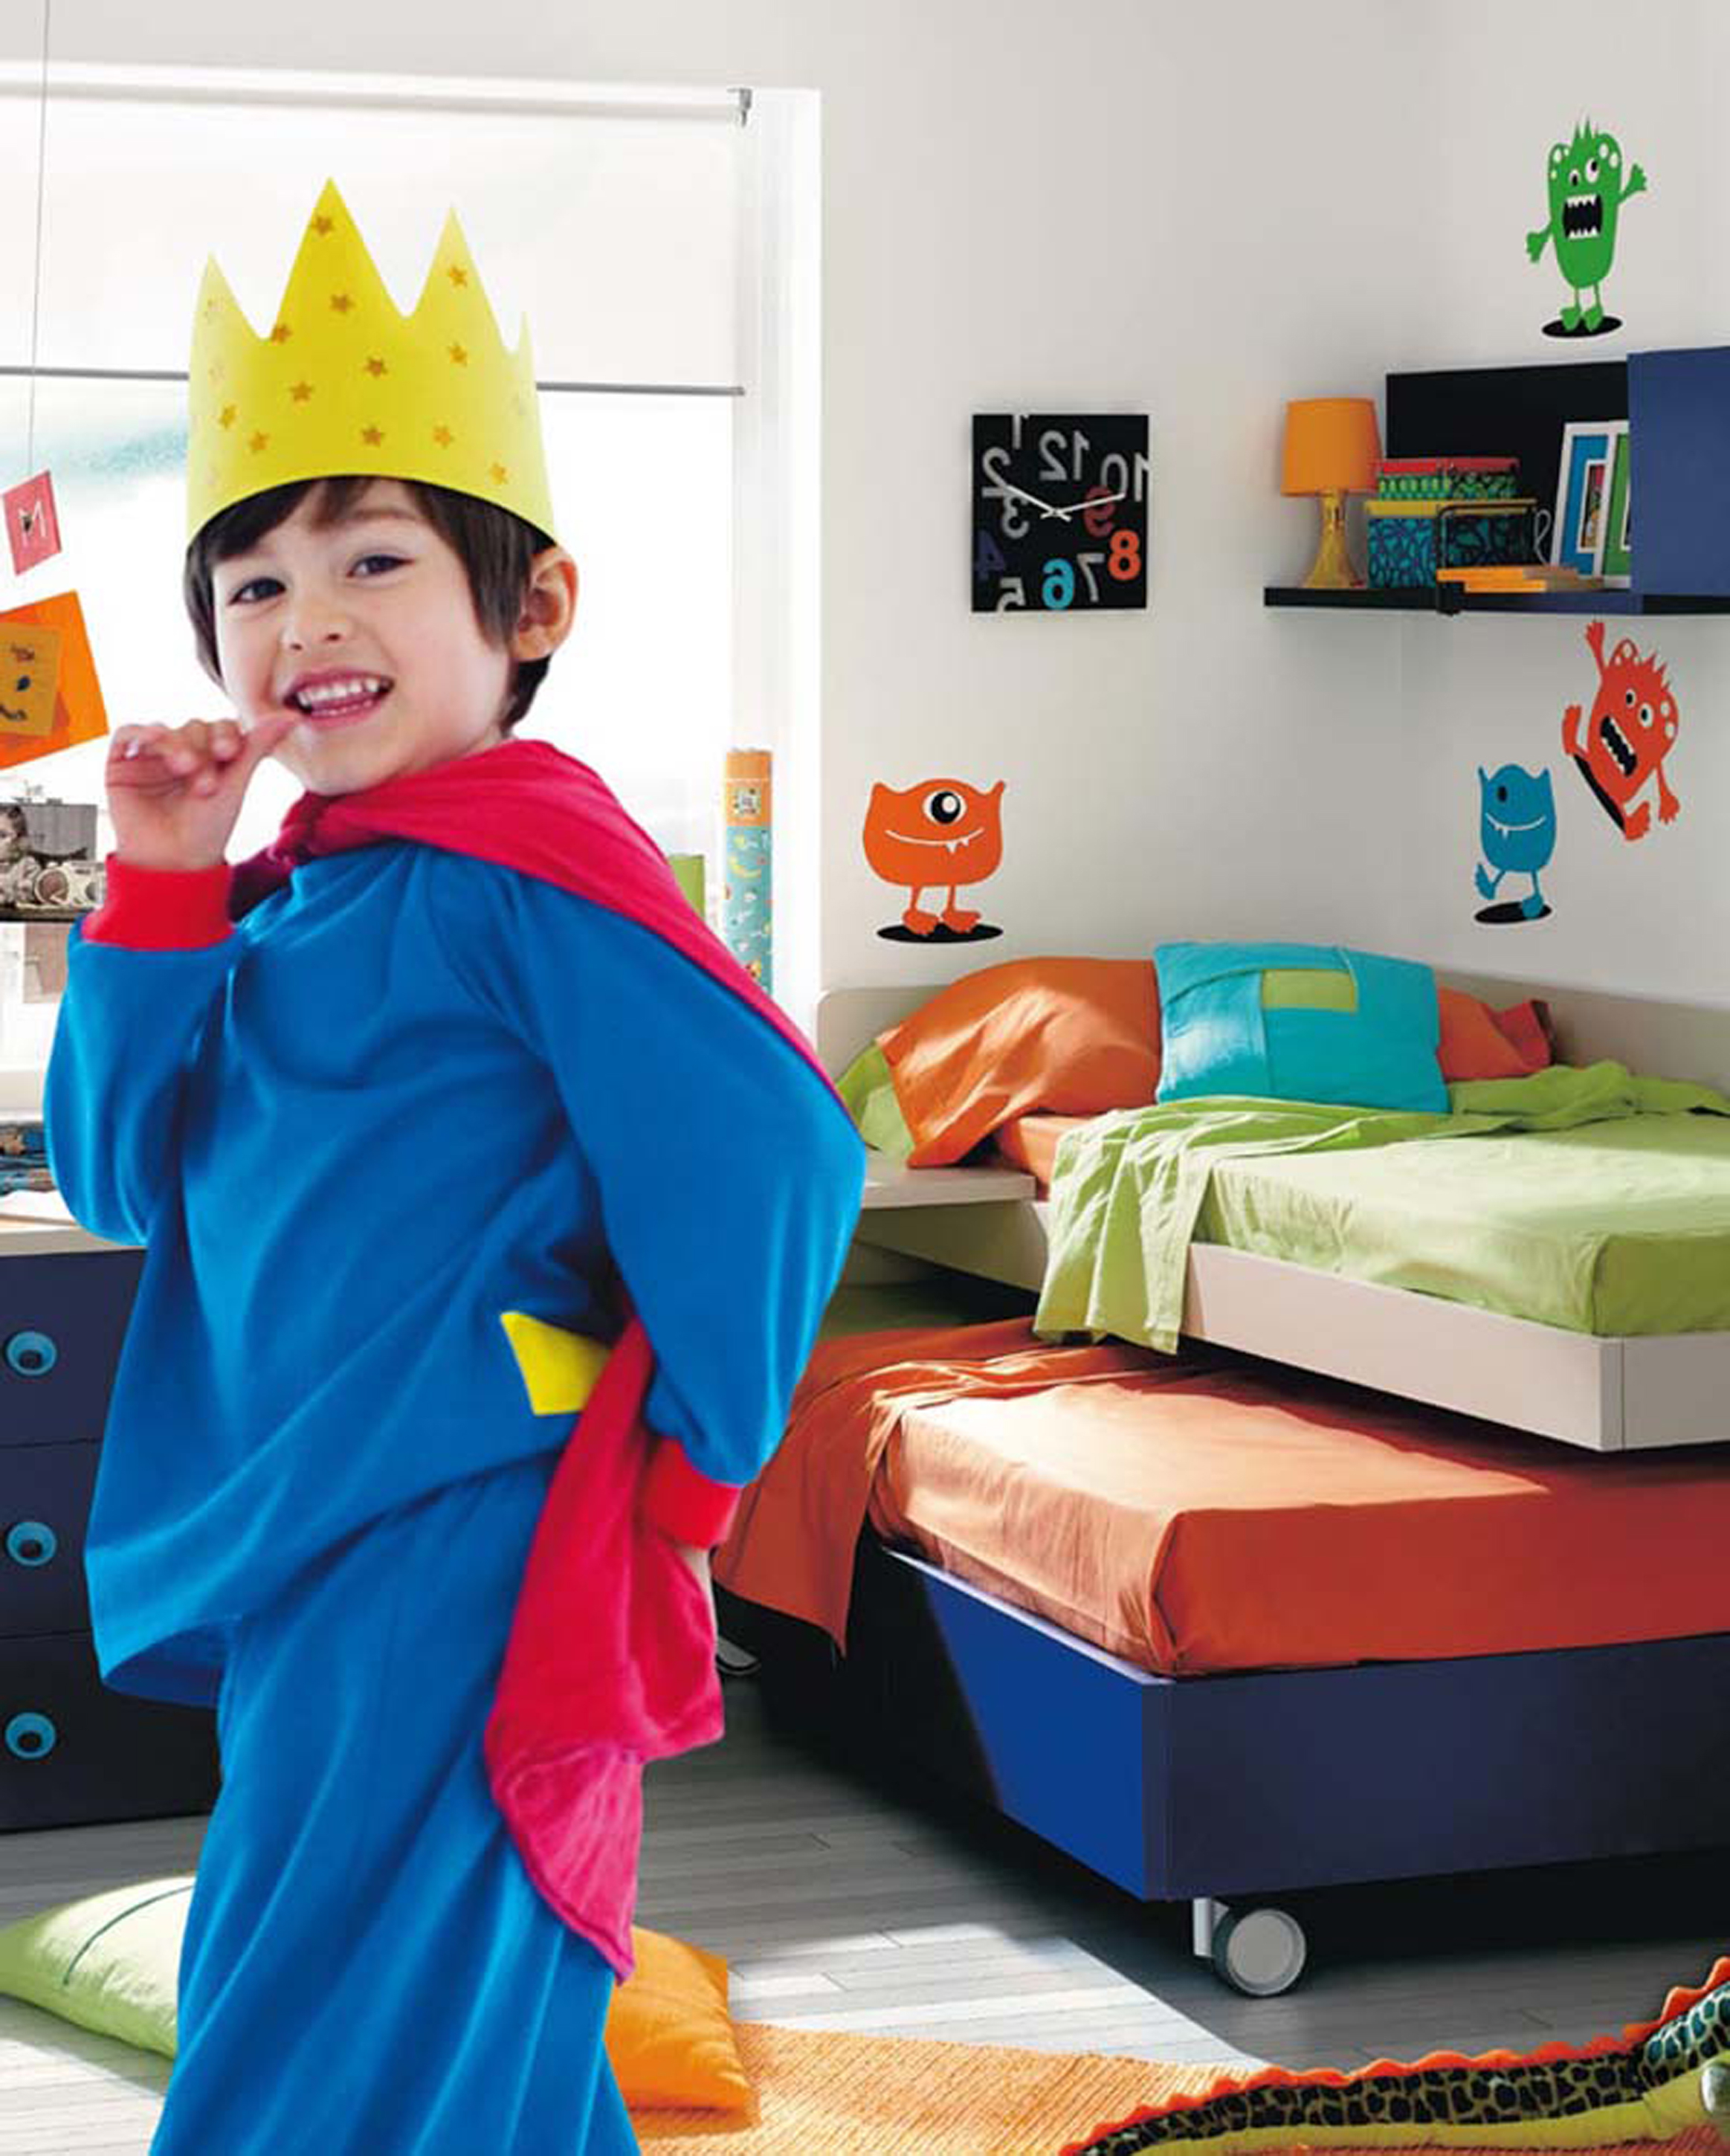 Kids Bedroom Interesting Boys Bedroom Decoration Idea With Blue Orange Bed Sheets With Light Blue Pilloe White Wall With Colorful Monster Motive And Orange Desk Lamp Impressive Boys (View 8 of 28)